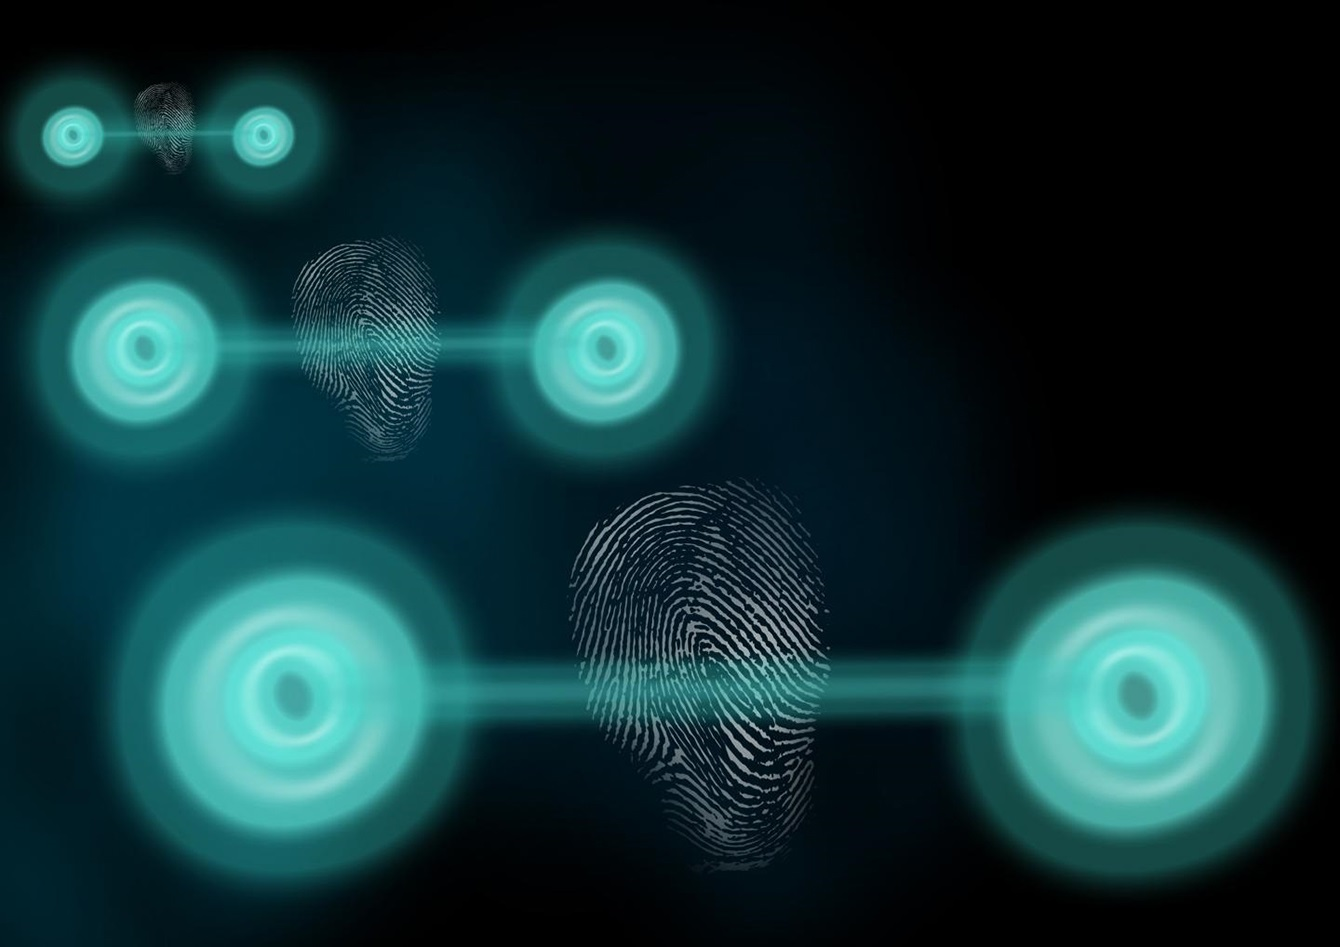 Measuring the fingerprint of quantum states could help to guard against errors and defective devices in quantum technologies.